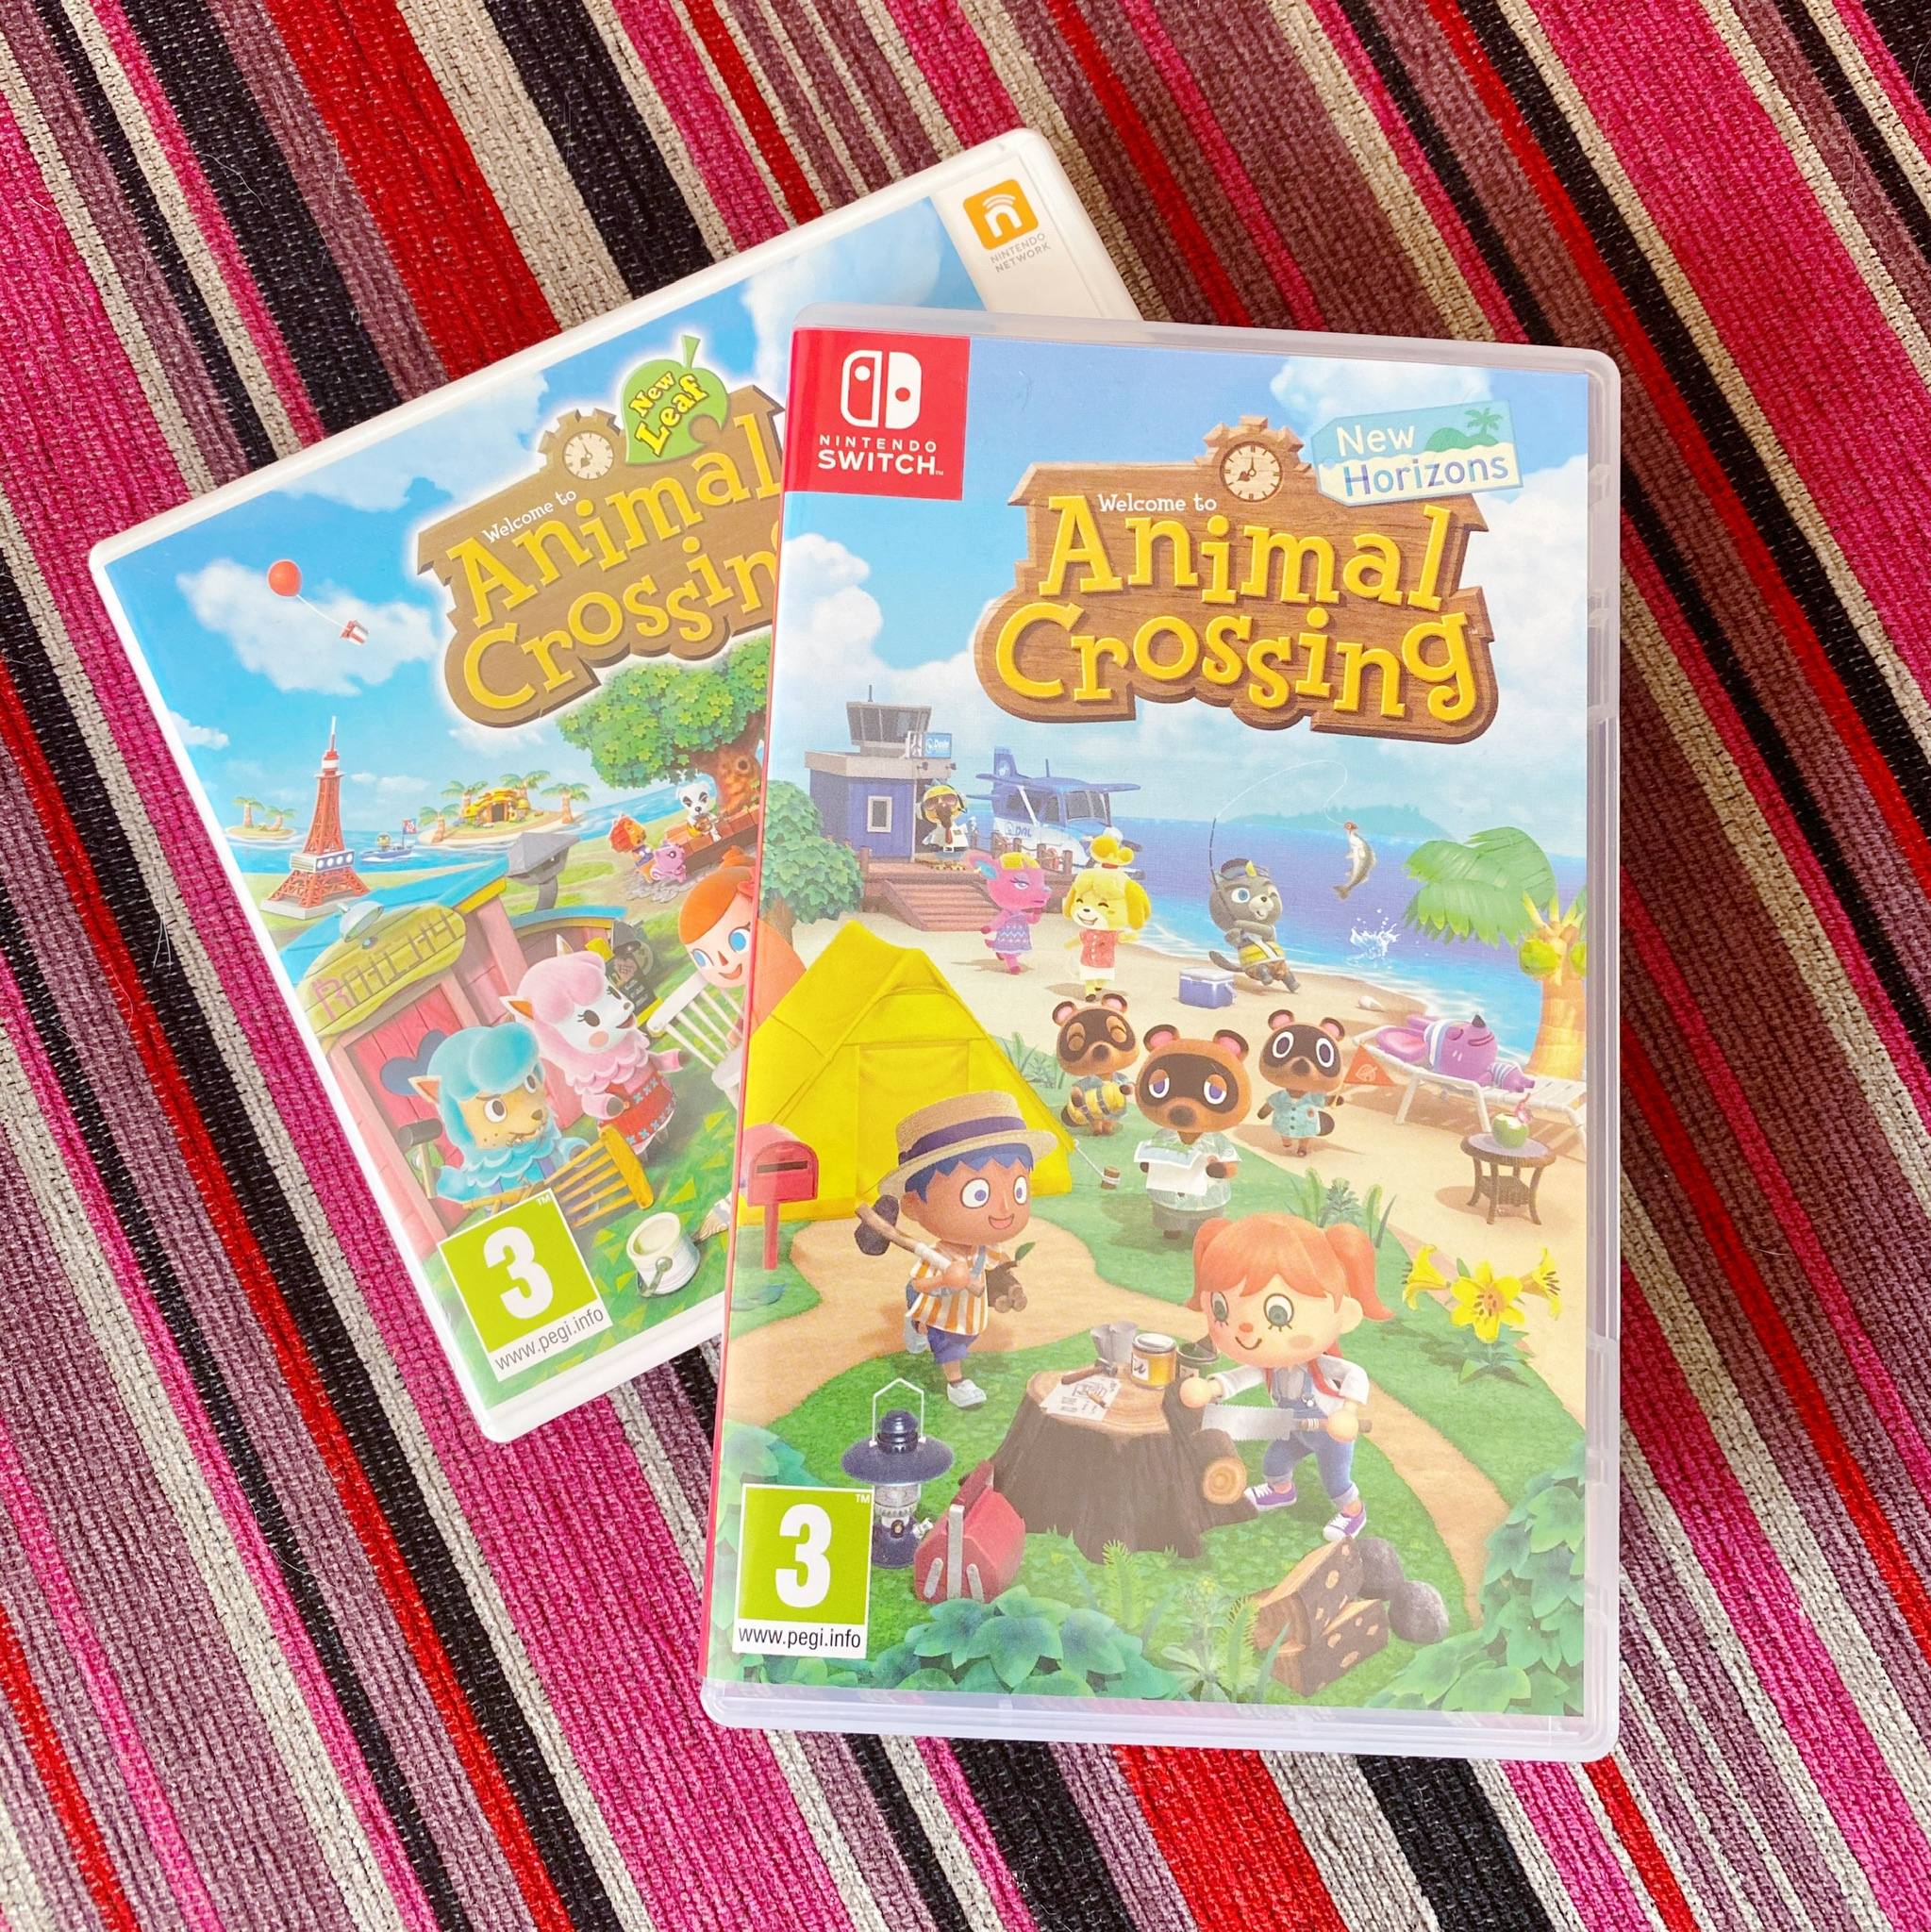 The Estellosaurus Animal Crossing Island Getaway Tag